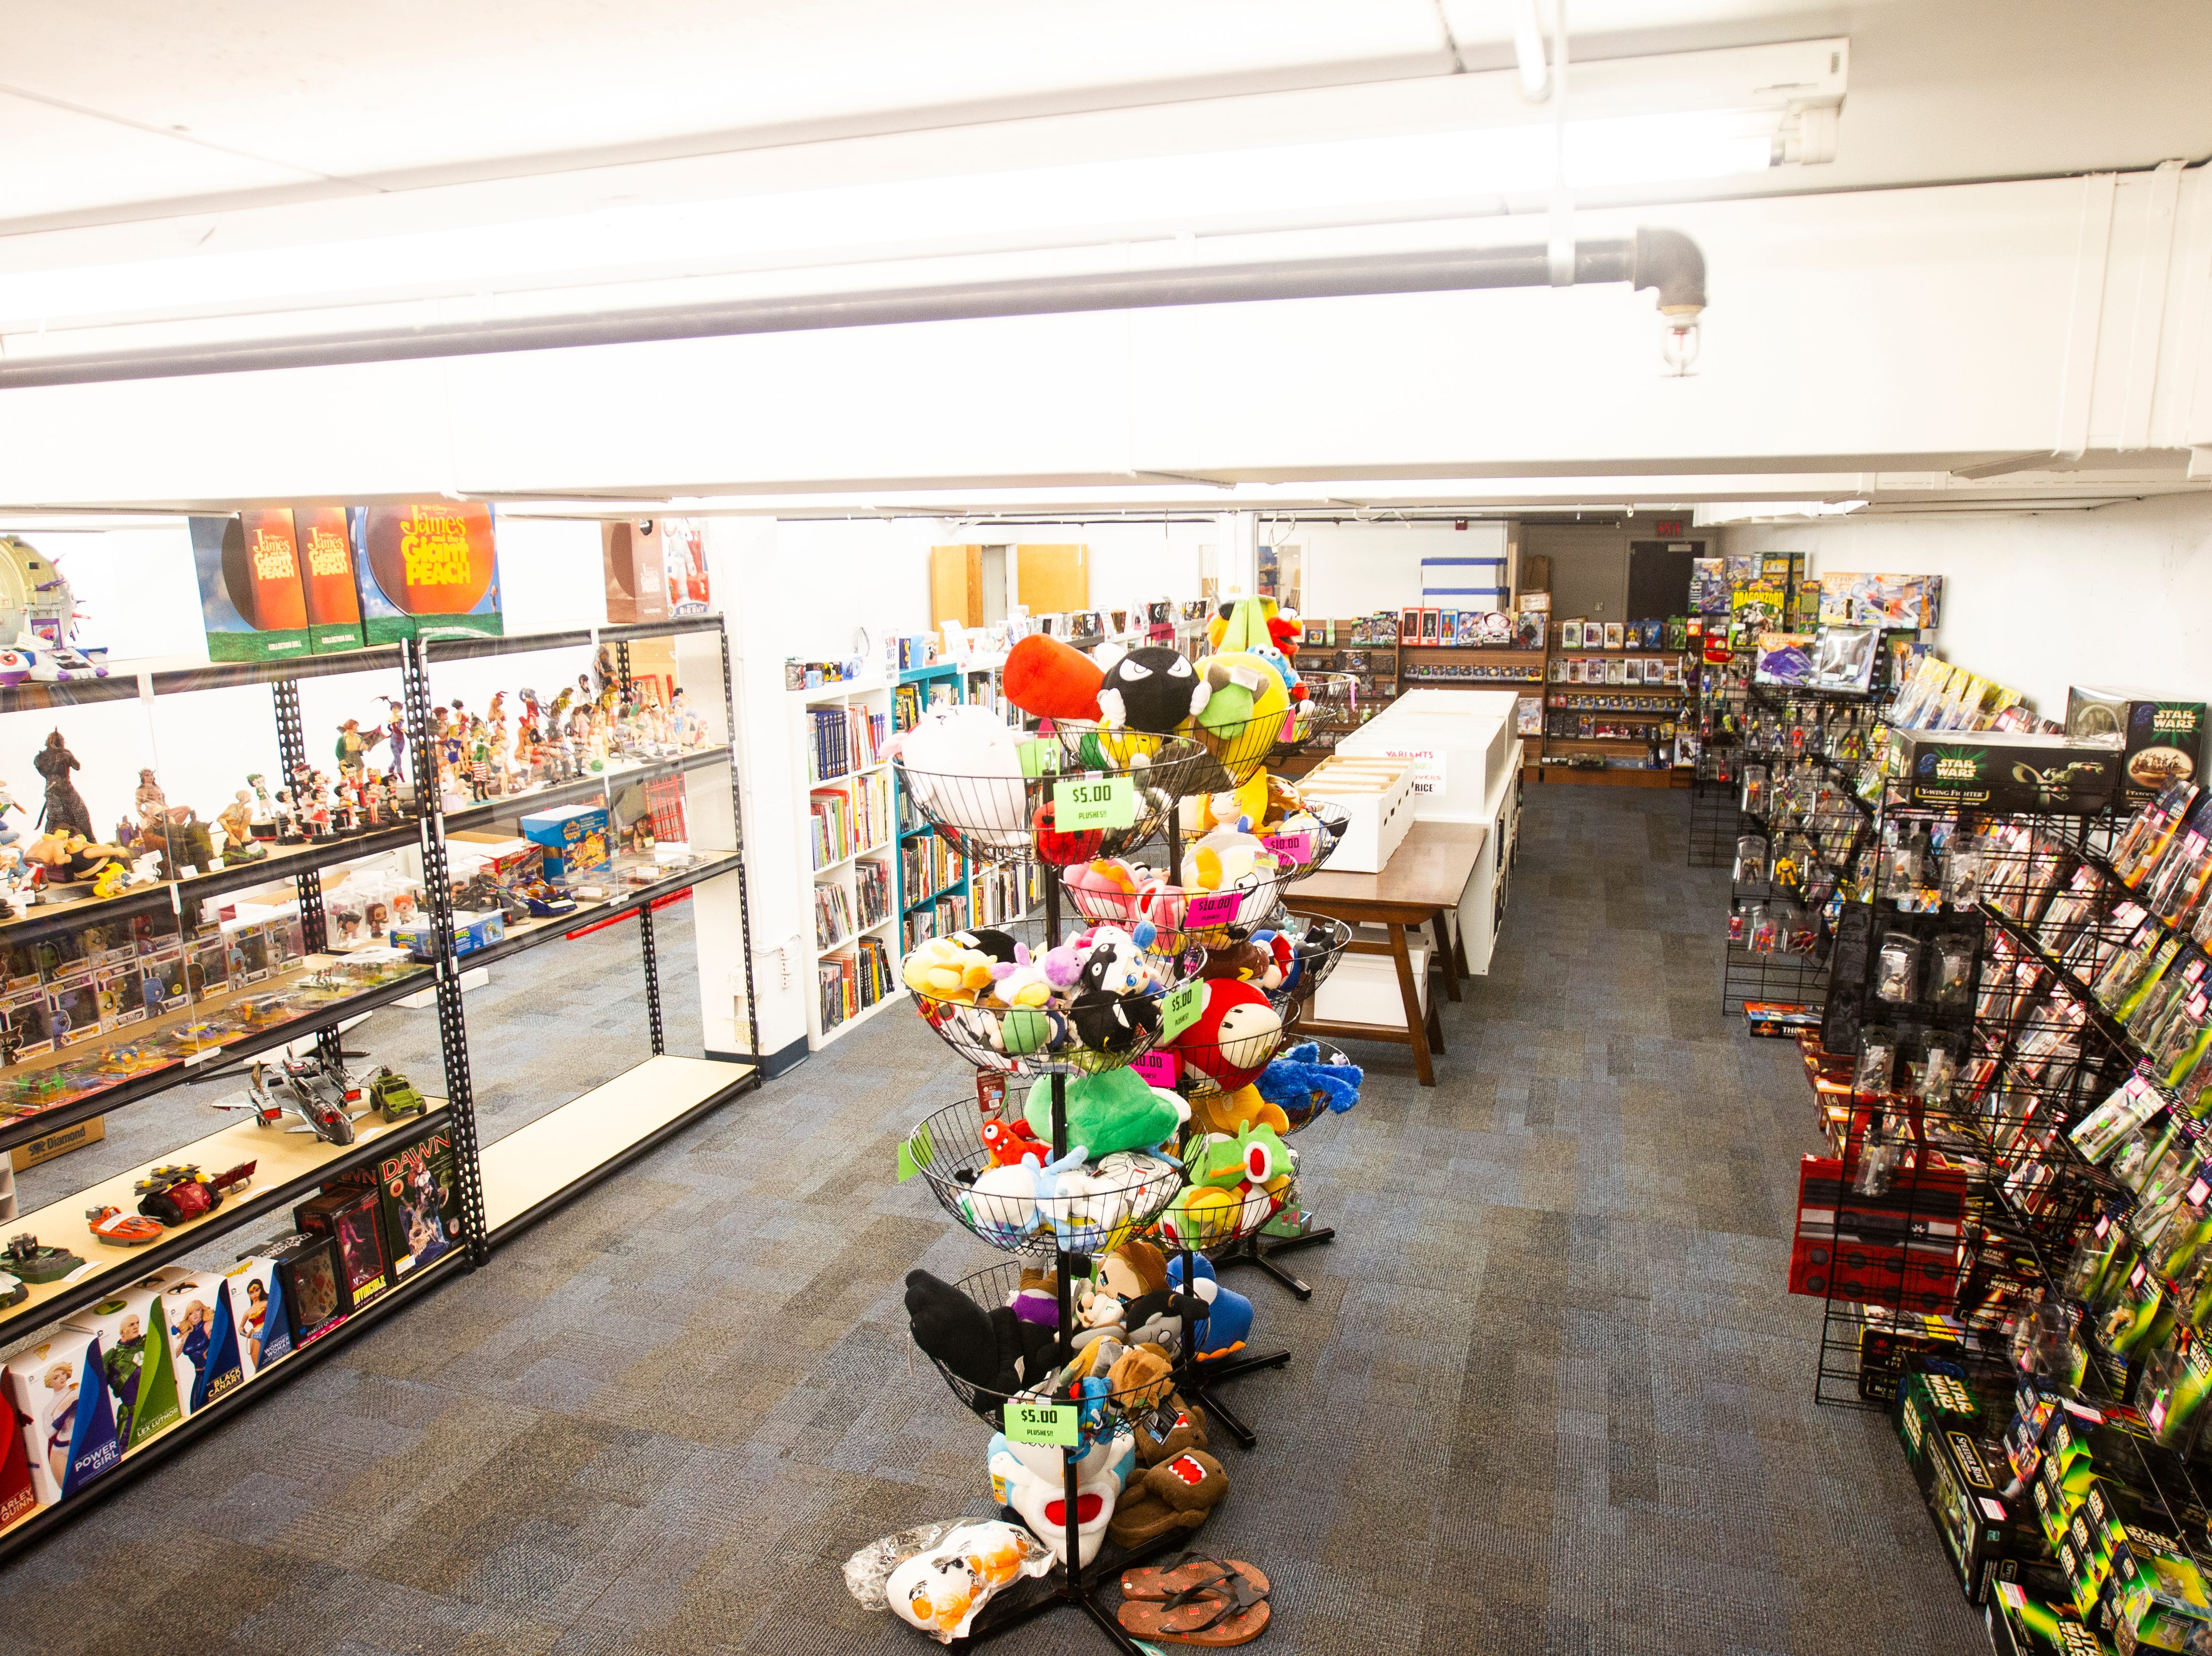 Merchandise is displayed on Sunday, Nov. 18, 2018, inside Daydreams Dungeon in the basement of 115 S. Linn St. in Iowa City. Daydreams Comics owner Zach Power also operates the Dungeon.